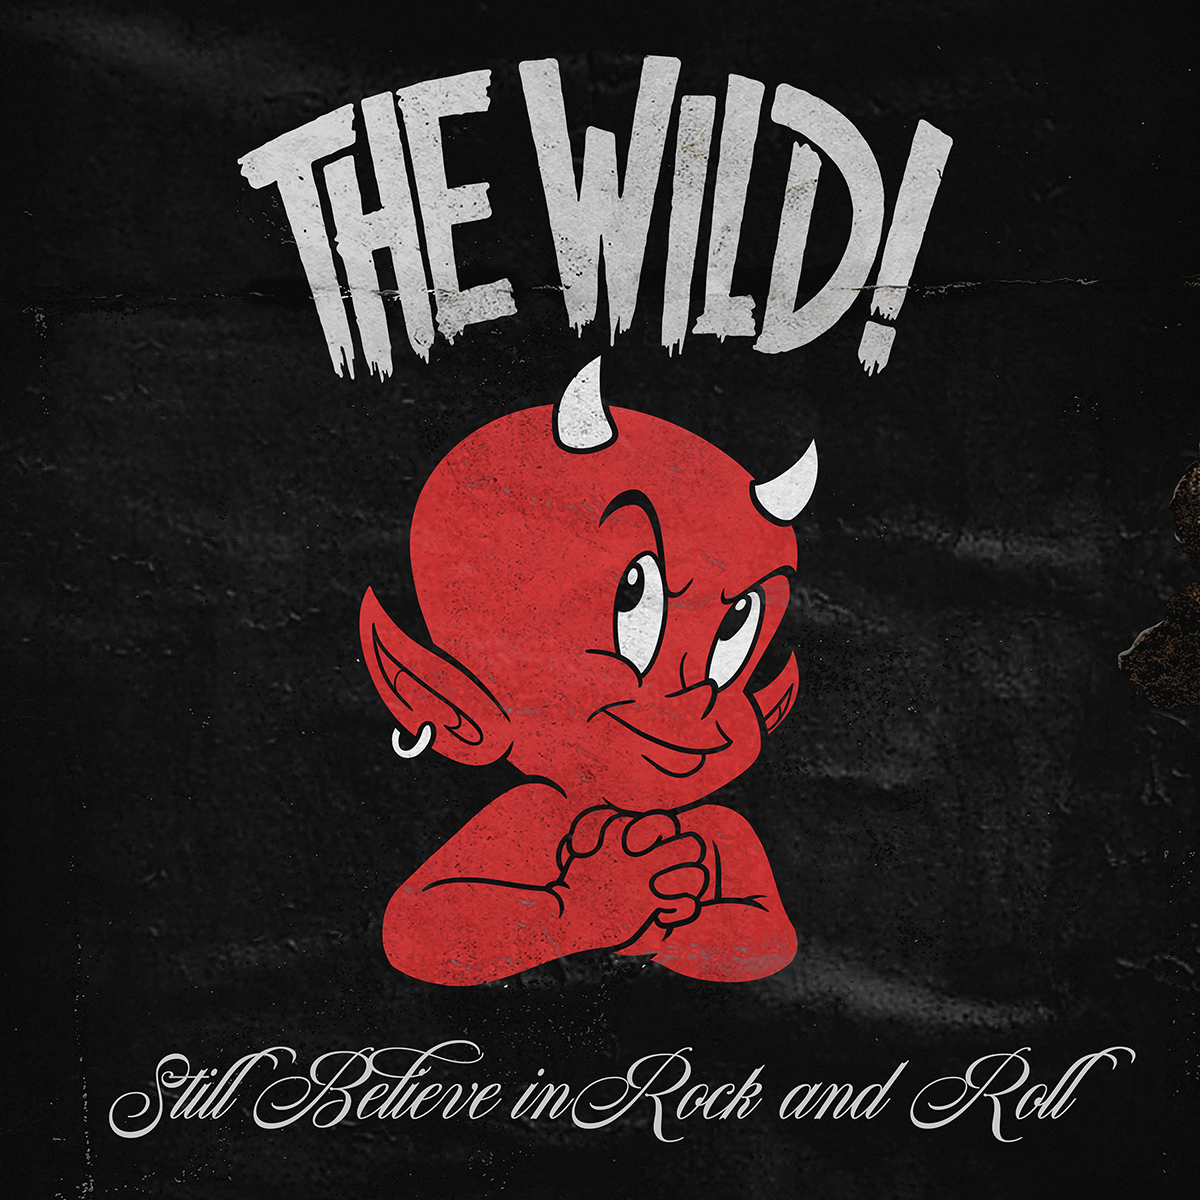 The Wild! Release Still Believe In Rock And Roll